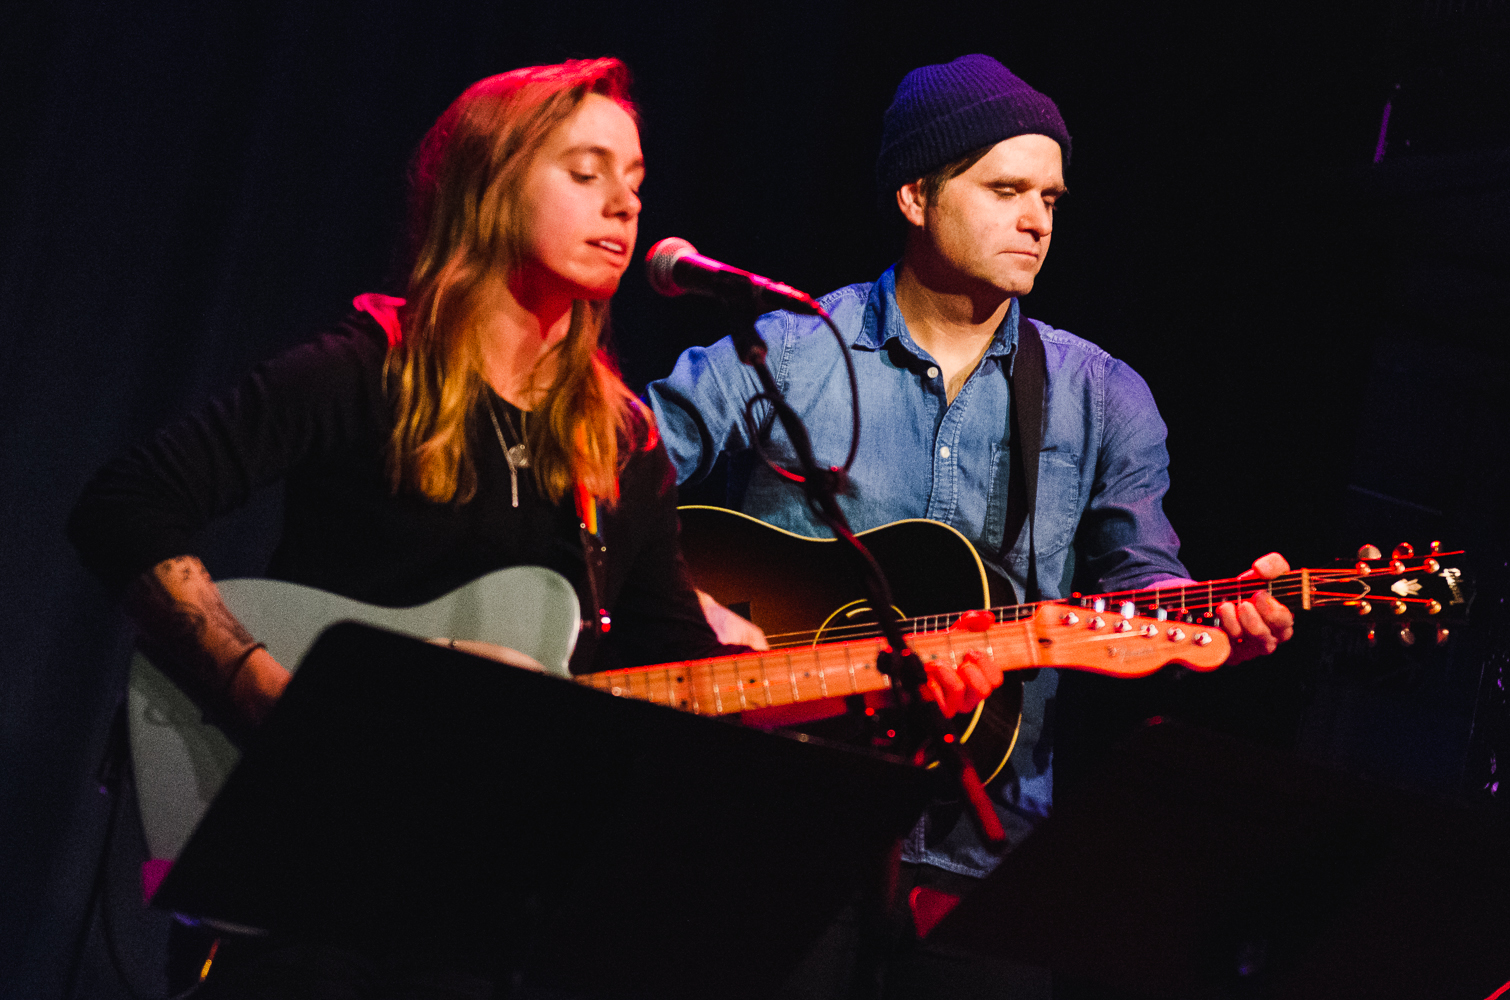 Tiny Changes- A Celebration of the Songs of Scott Hutchison Ben Kaye Julien Baker Ben Gibbard